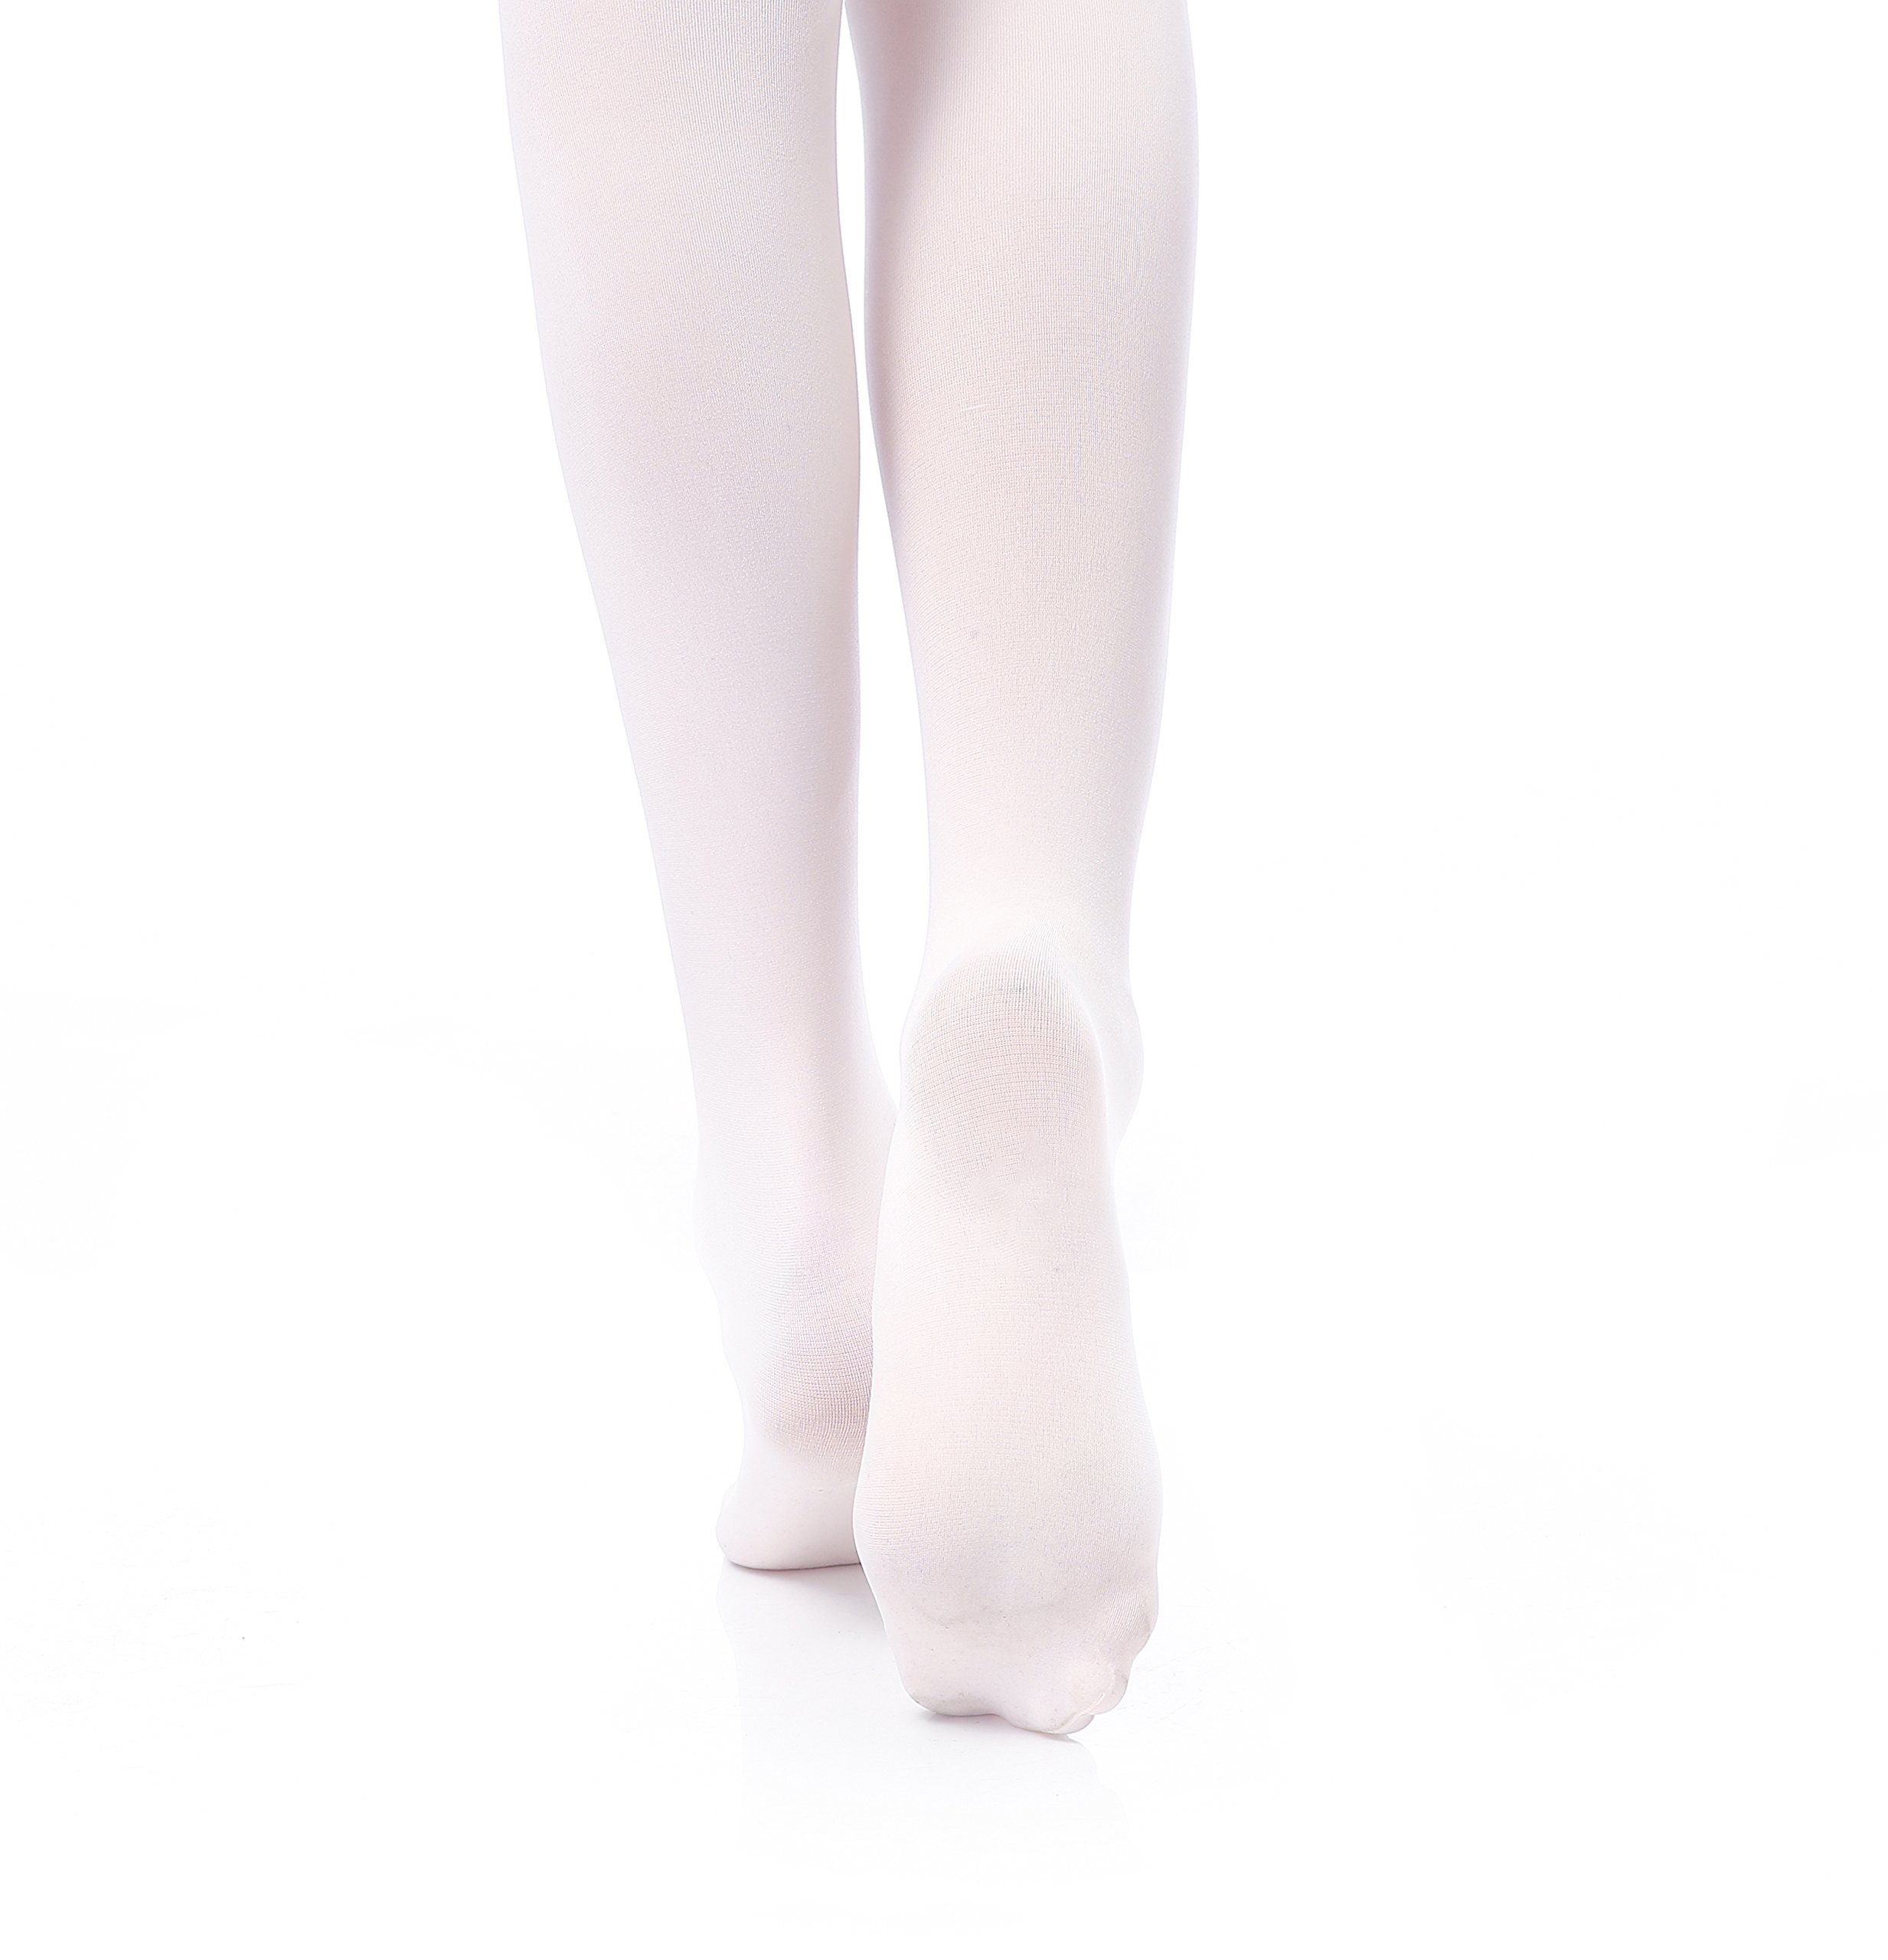 Tights for Girls Ballet Leotards Toddler Dance Leggings Pants Footed Kids (Ballet Pink - 2 Tights, 2-5 Years) by DIPUG (Image #7)